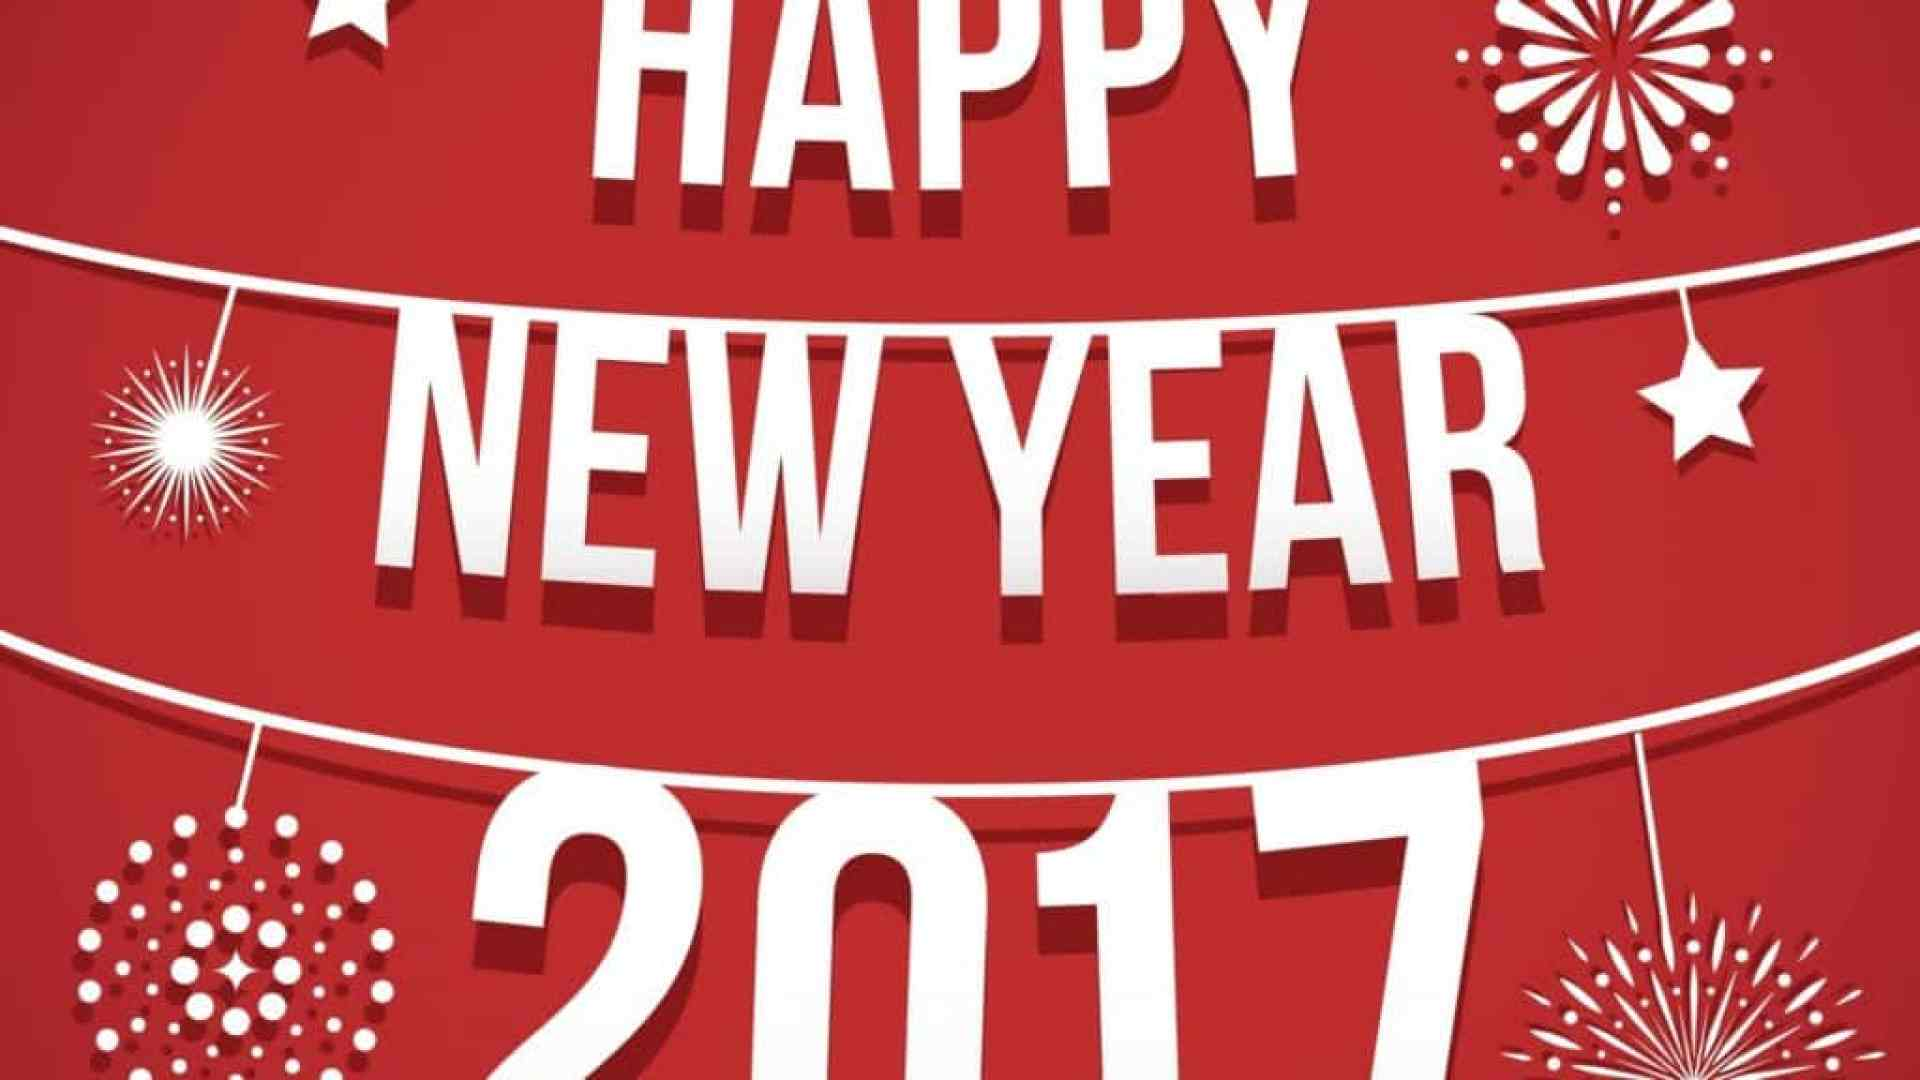 Happy New Year 2017 with decoration on red background